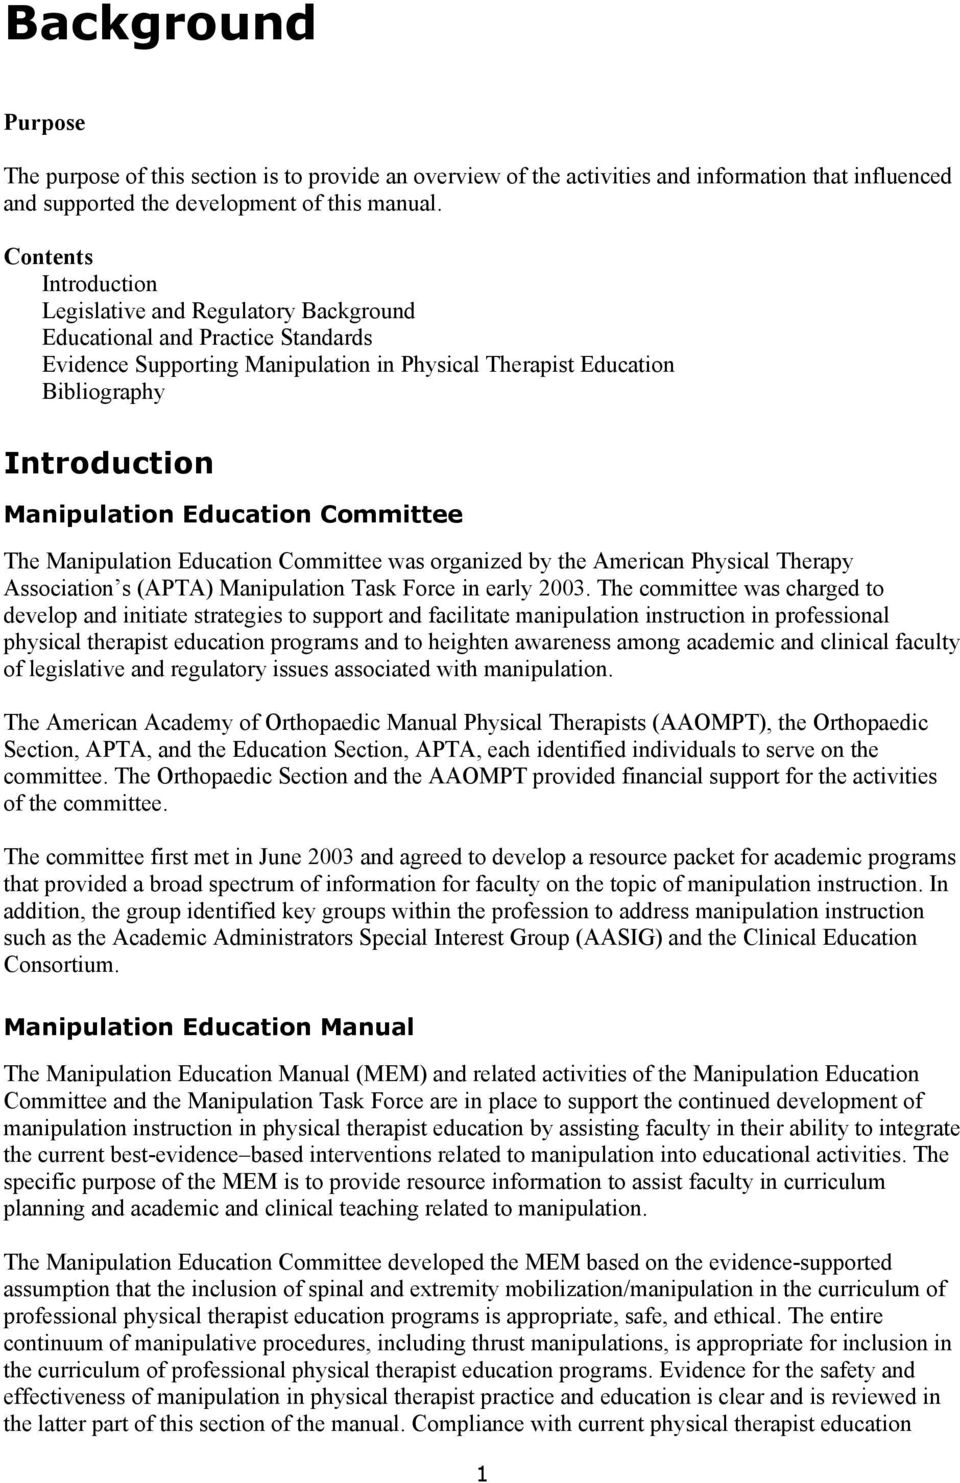 Education Committee The Manipulation Education Committee was organized by the American Physical Therapy Association s (APTA) Manipulation Task Force in early 2003.